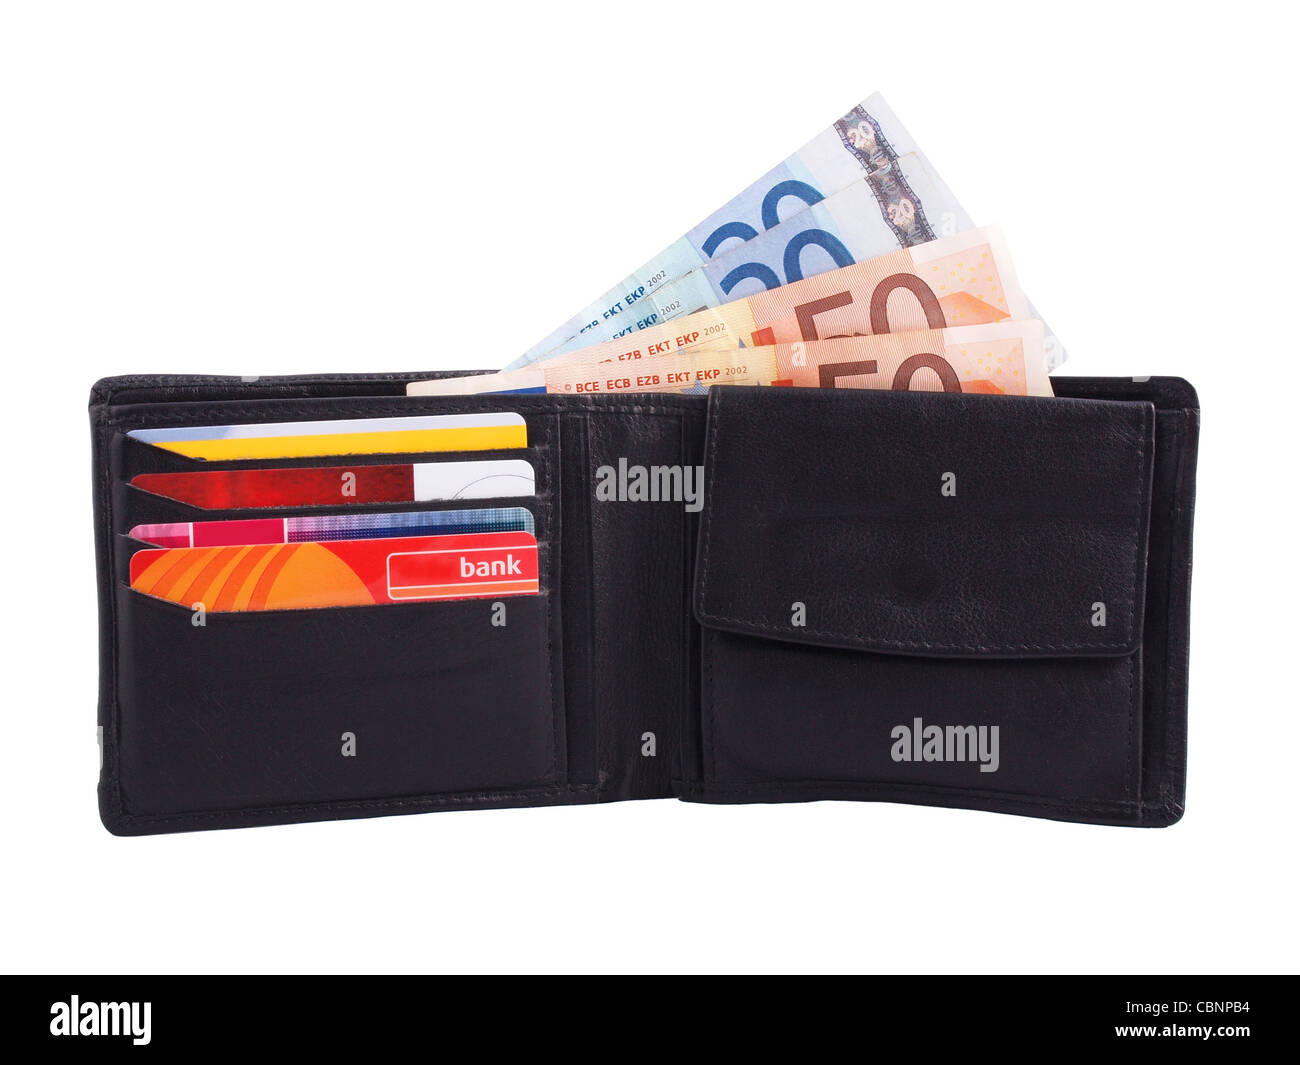 wallet with cash (euros) and cards - Stock Image